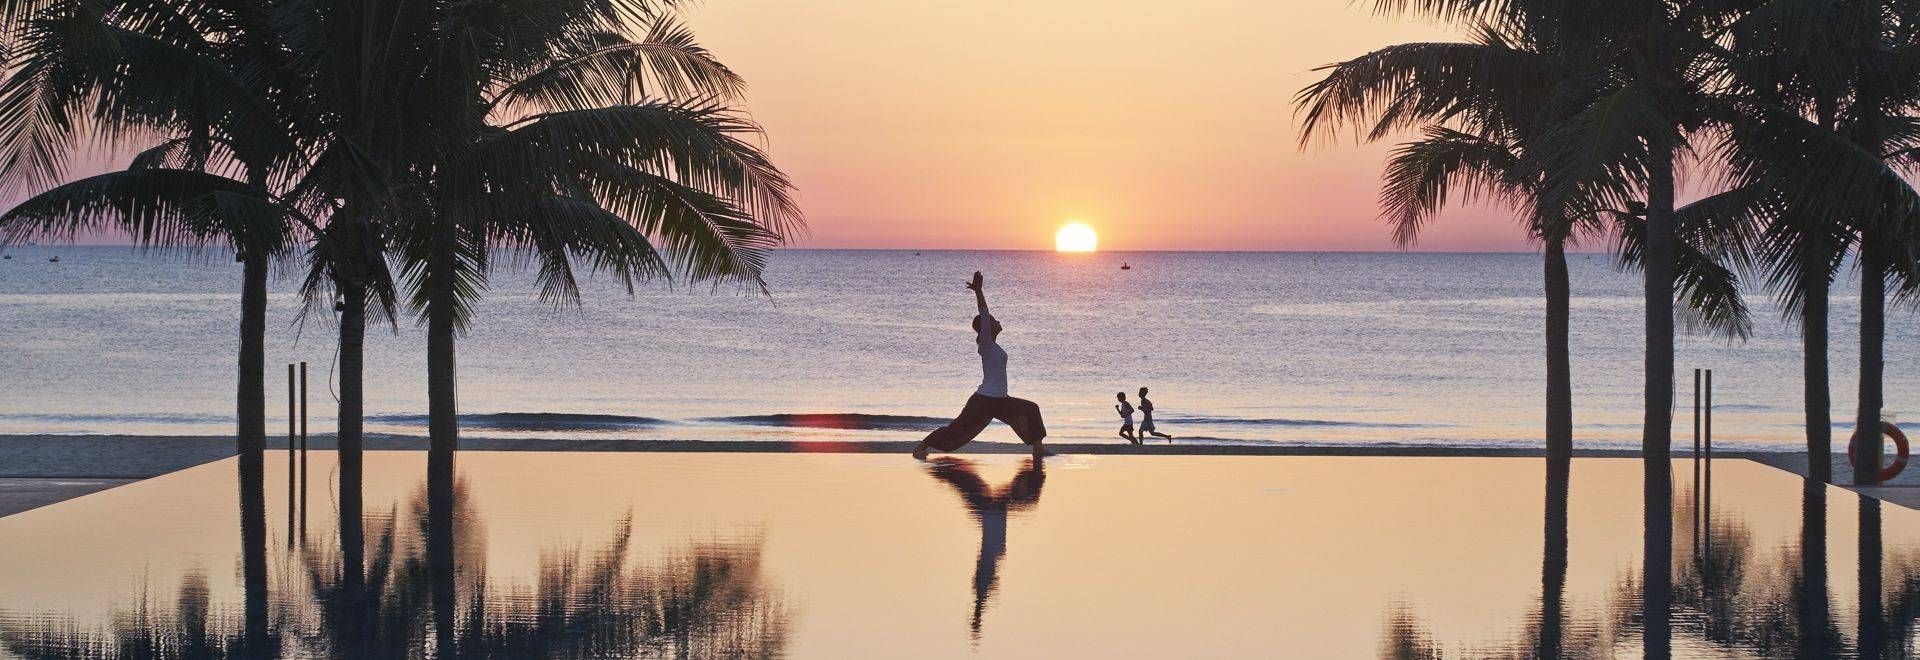 Fusion-Maia-yoga-sunset.jpg